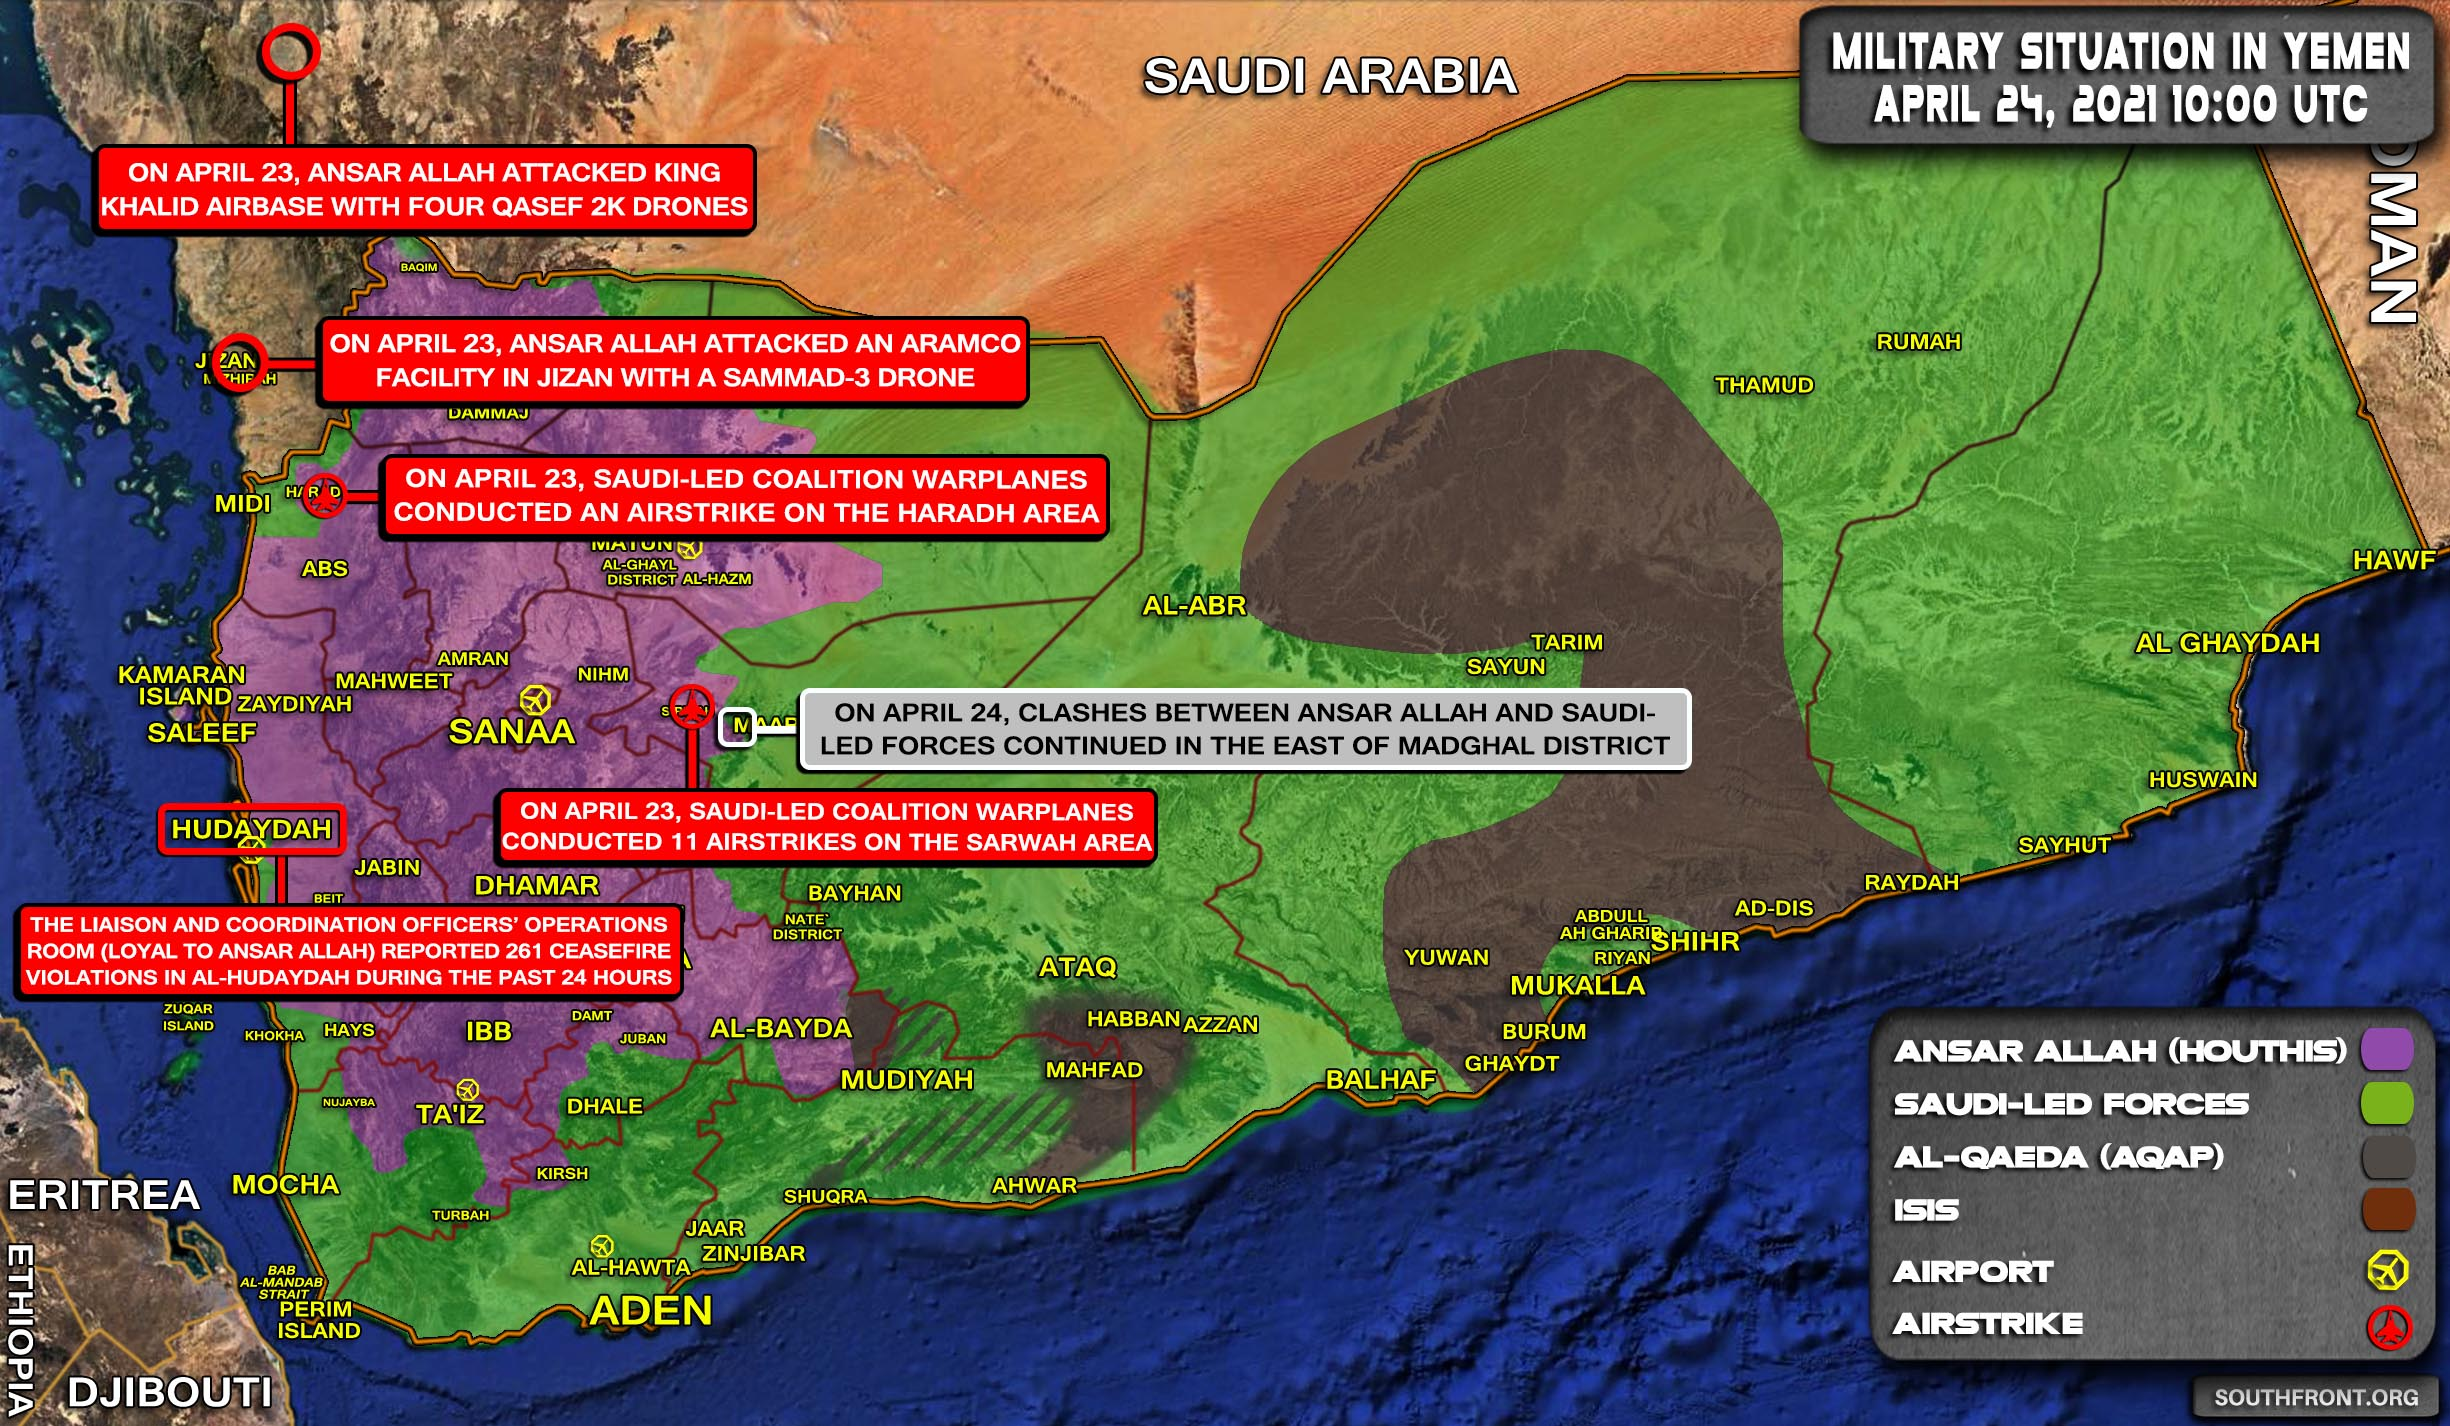 Military Situation In Yemen On April 24, 2021 (Map Update)